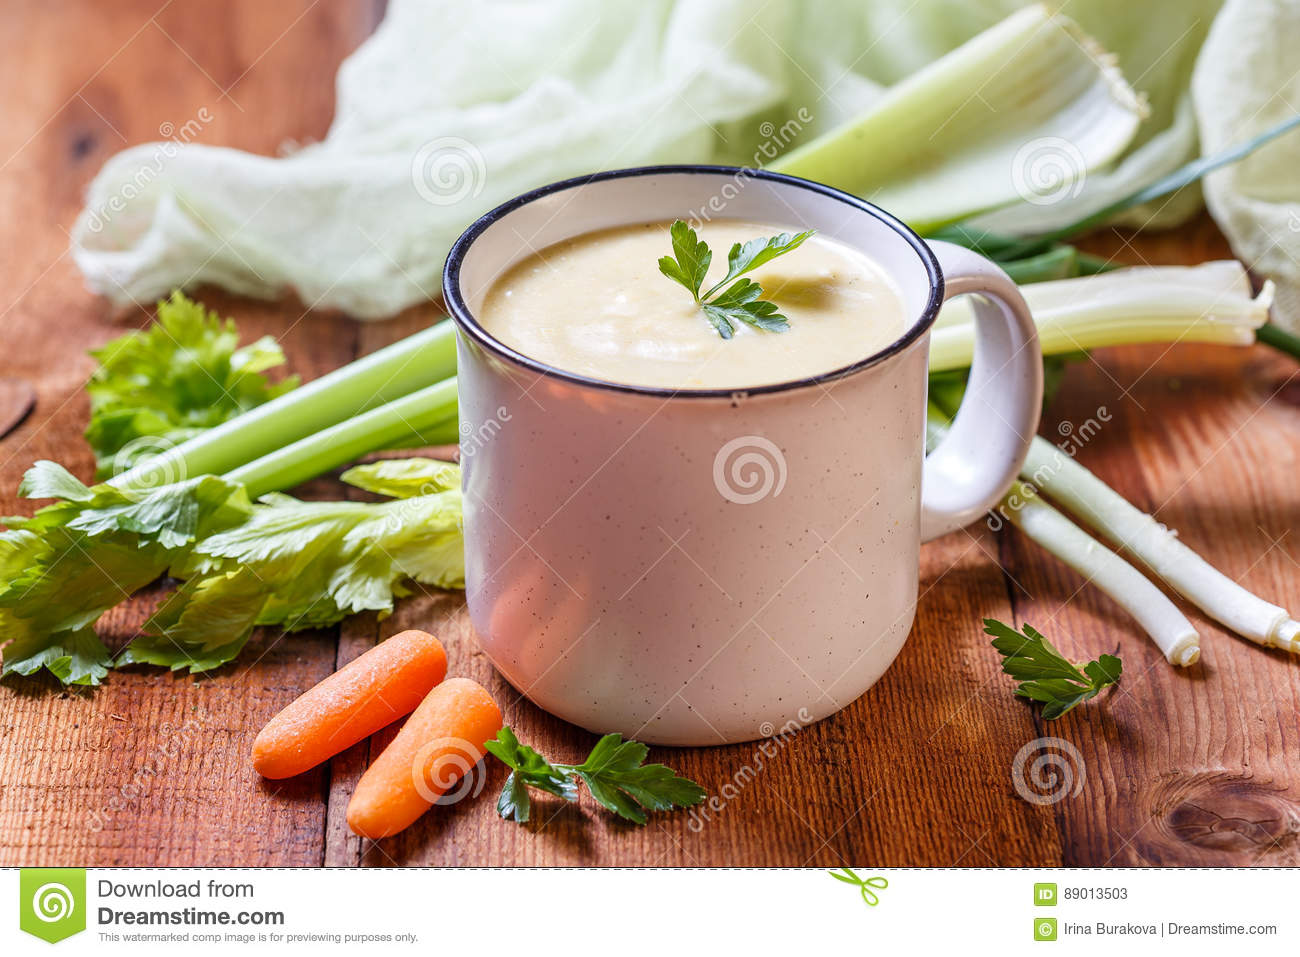 Vegetable soup puree in a mug